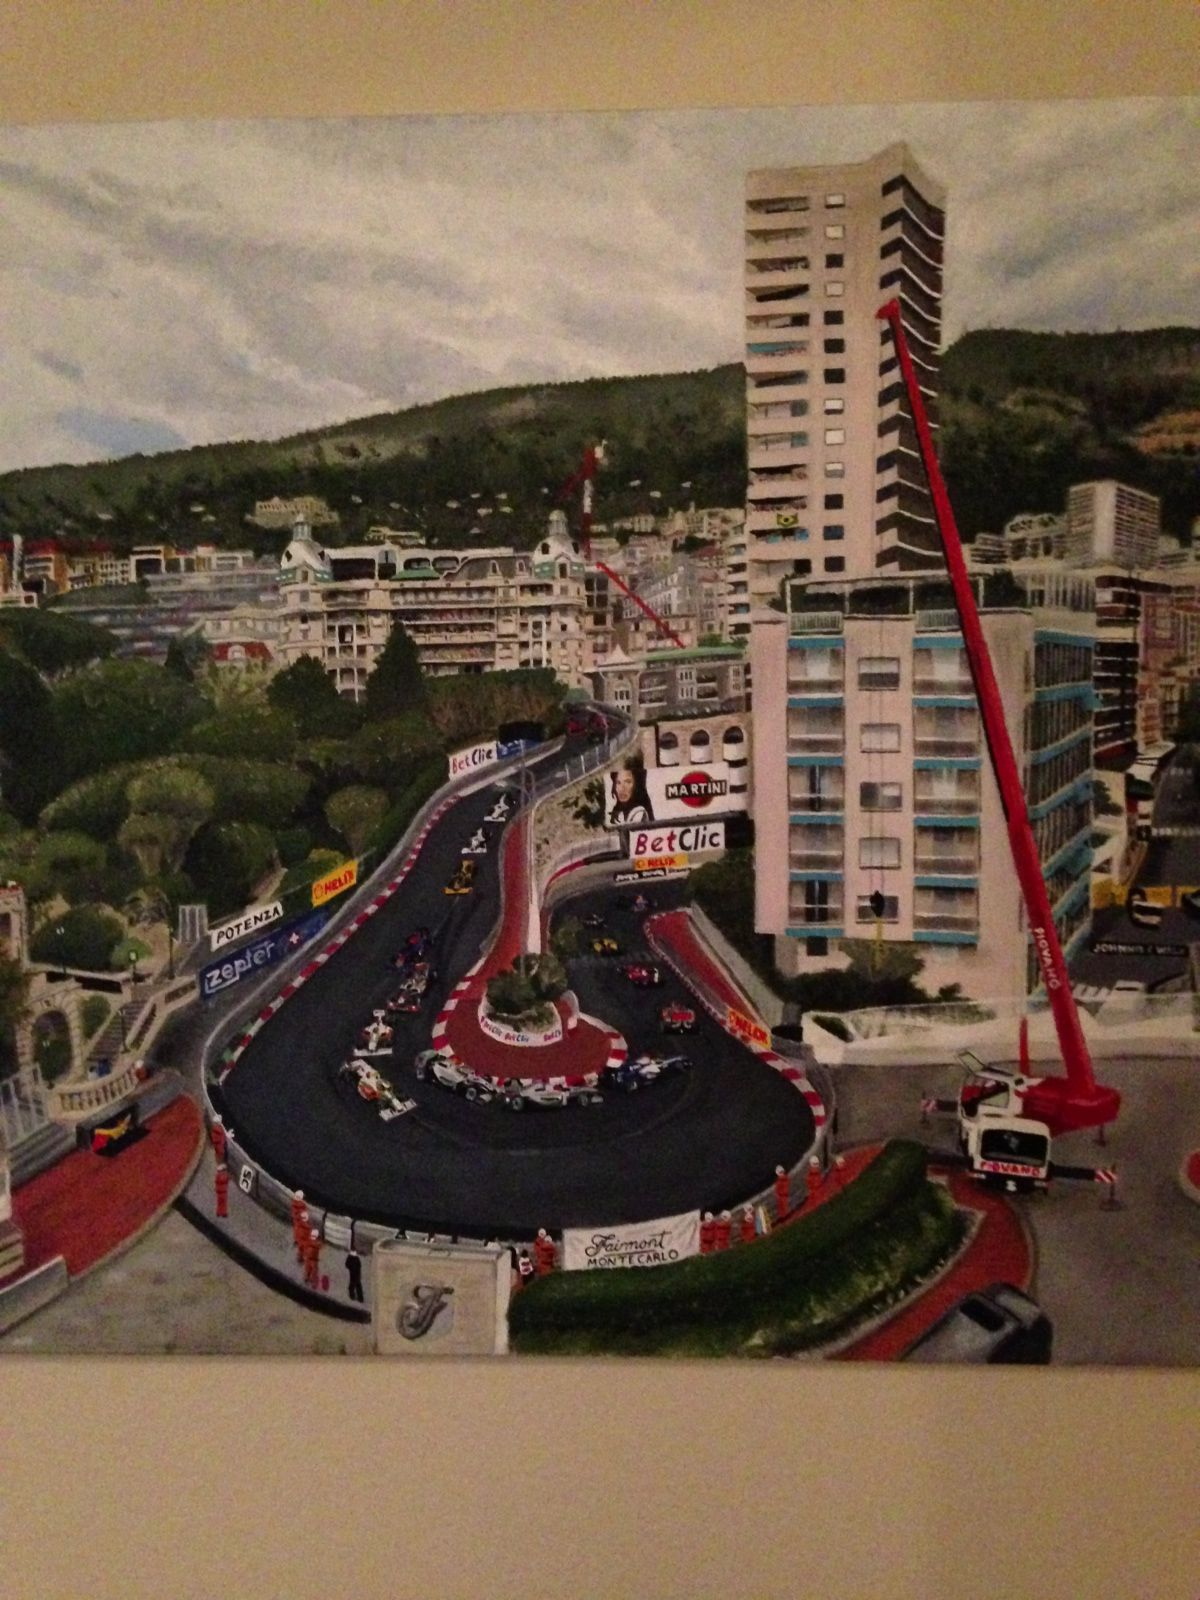 More F1 artwork can be found in this thread on our forums http://www.racedepartment.com/forum/threads/f1-artwork.66908/